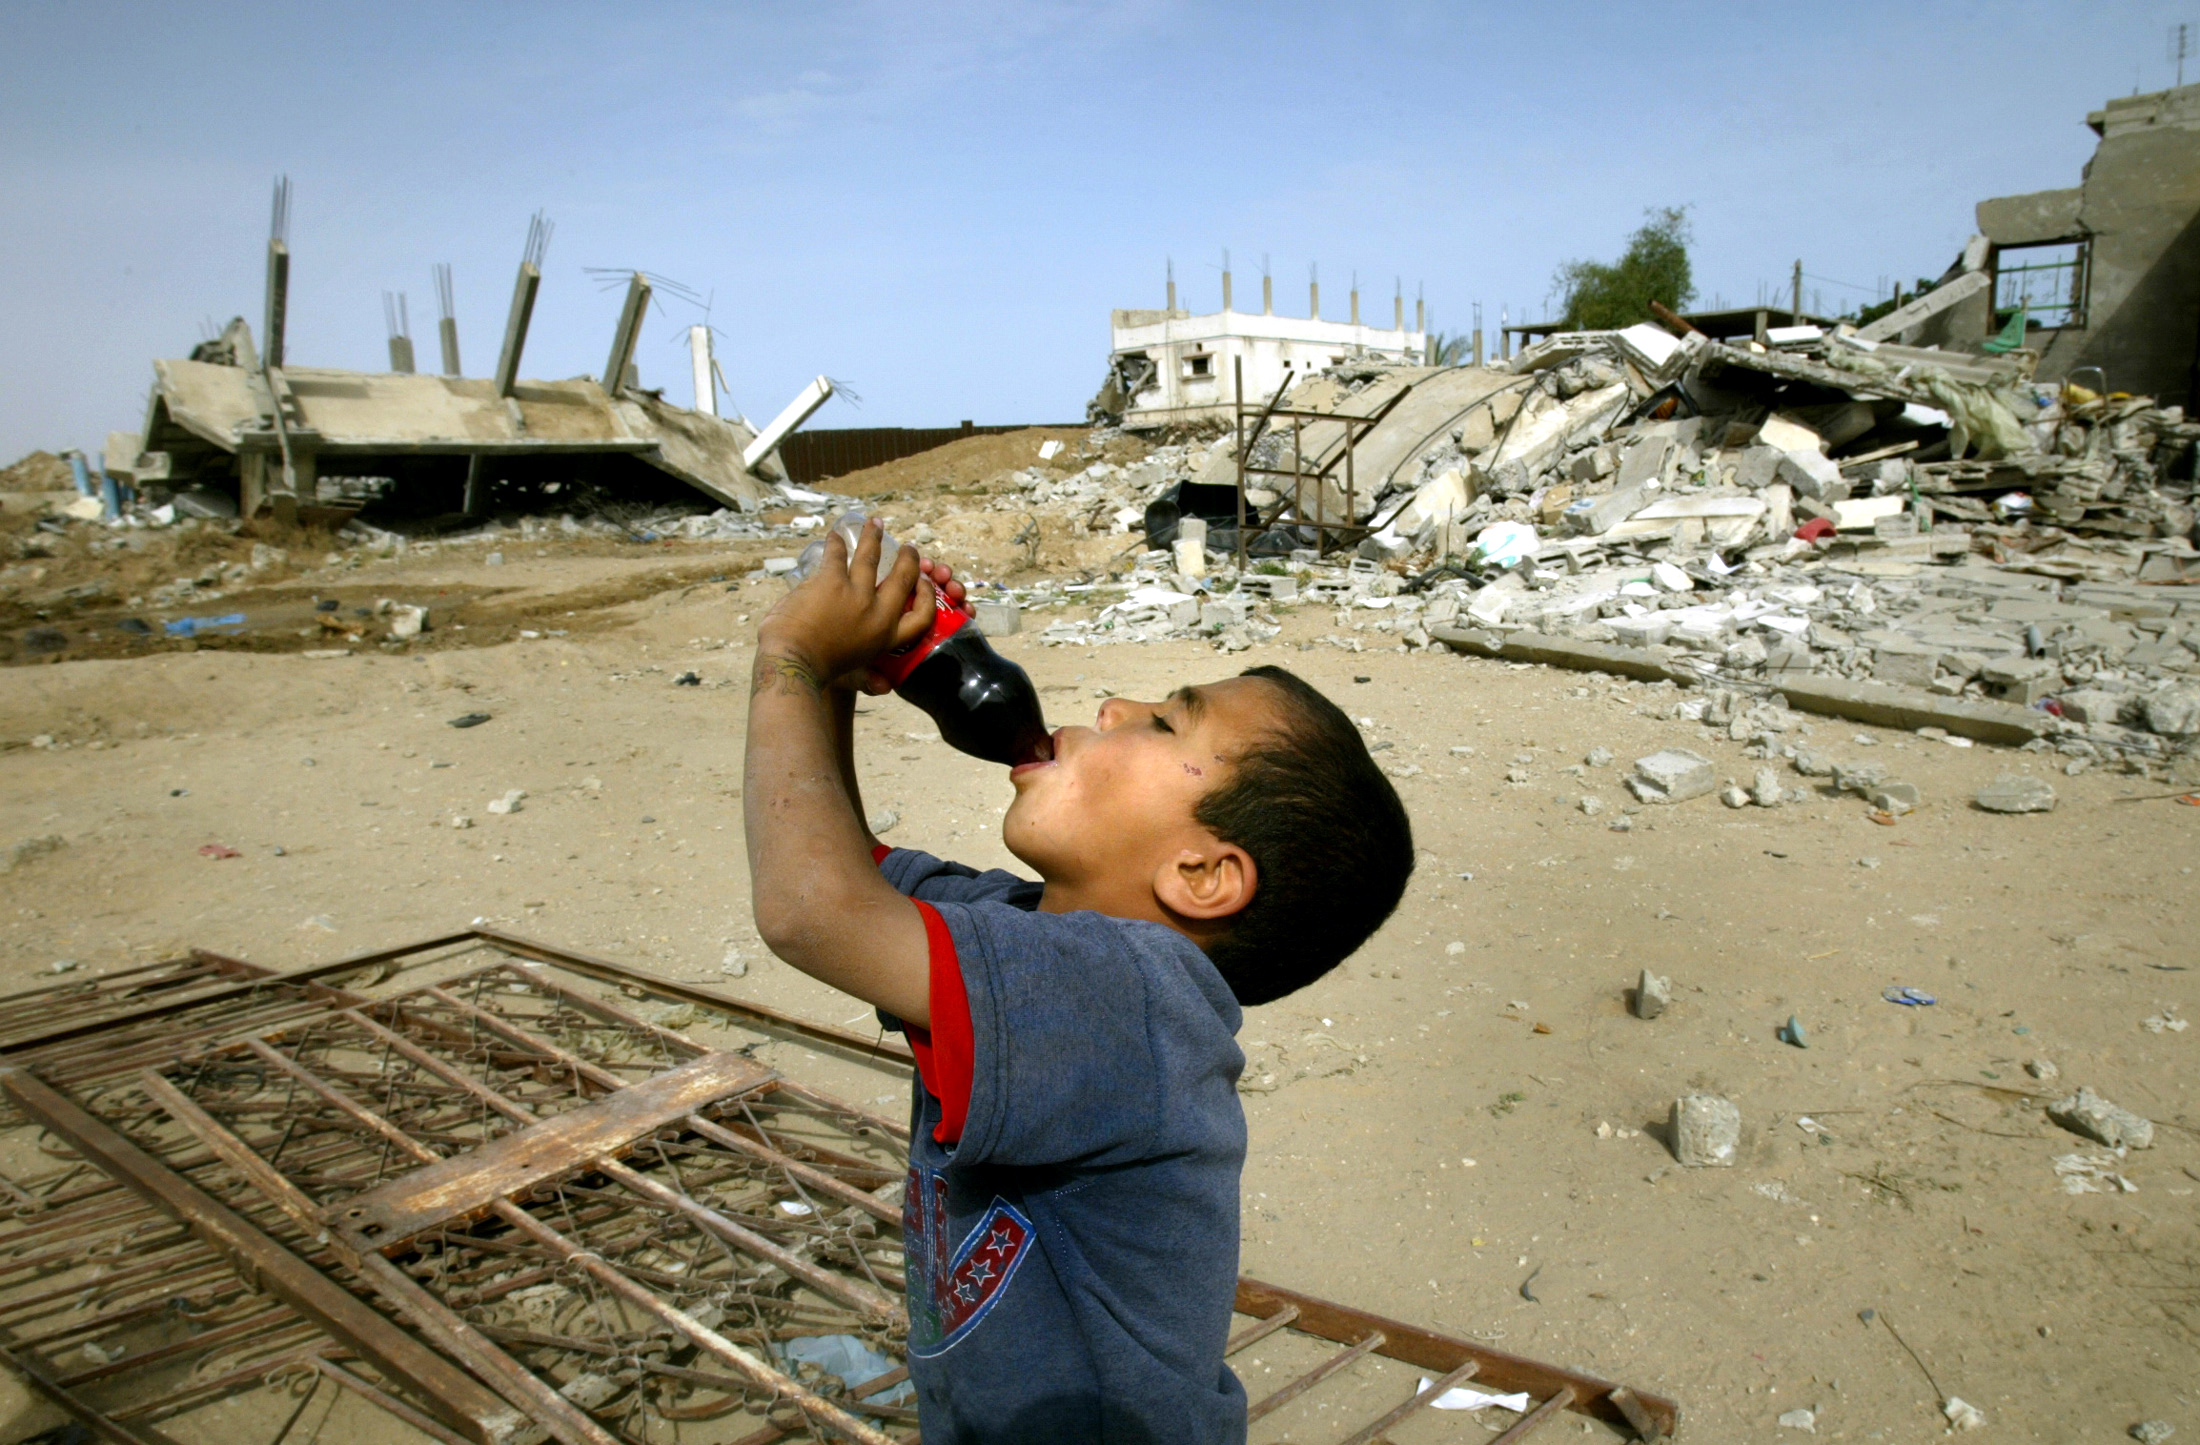 PALESTINIAN BOY DRINKS COCA-COLA NEXT TO HOUSES DESTROYED AT RAFAH REFUGEE CAMP.